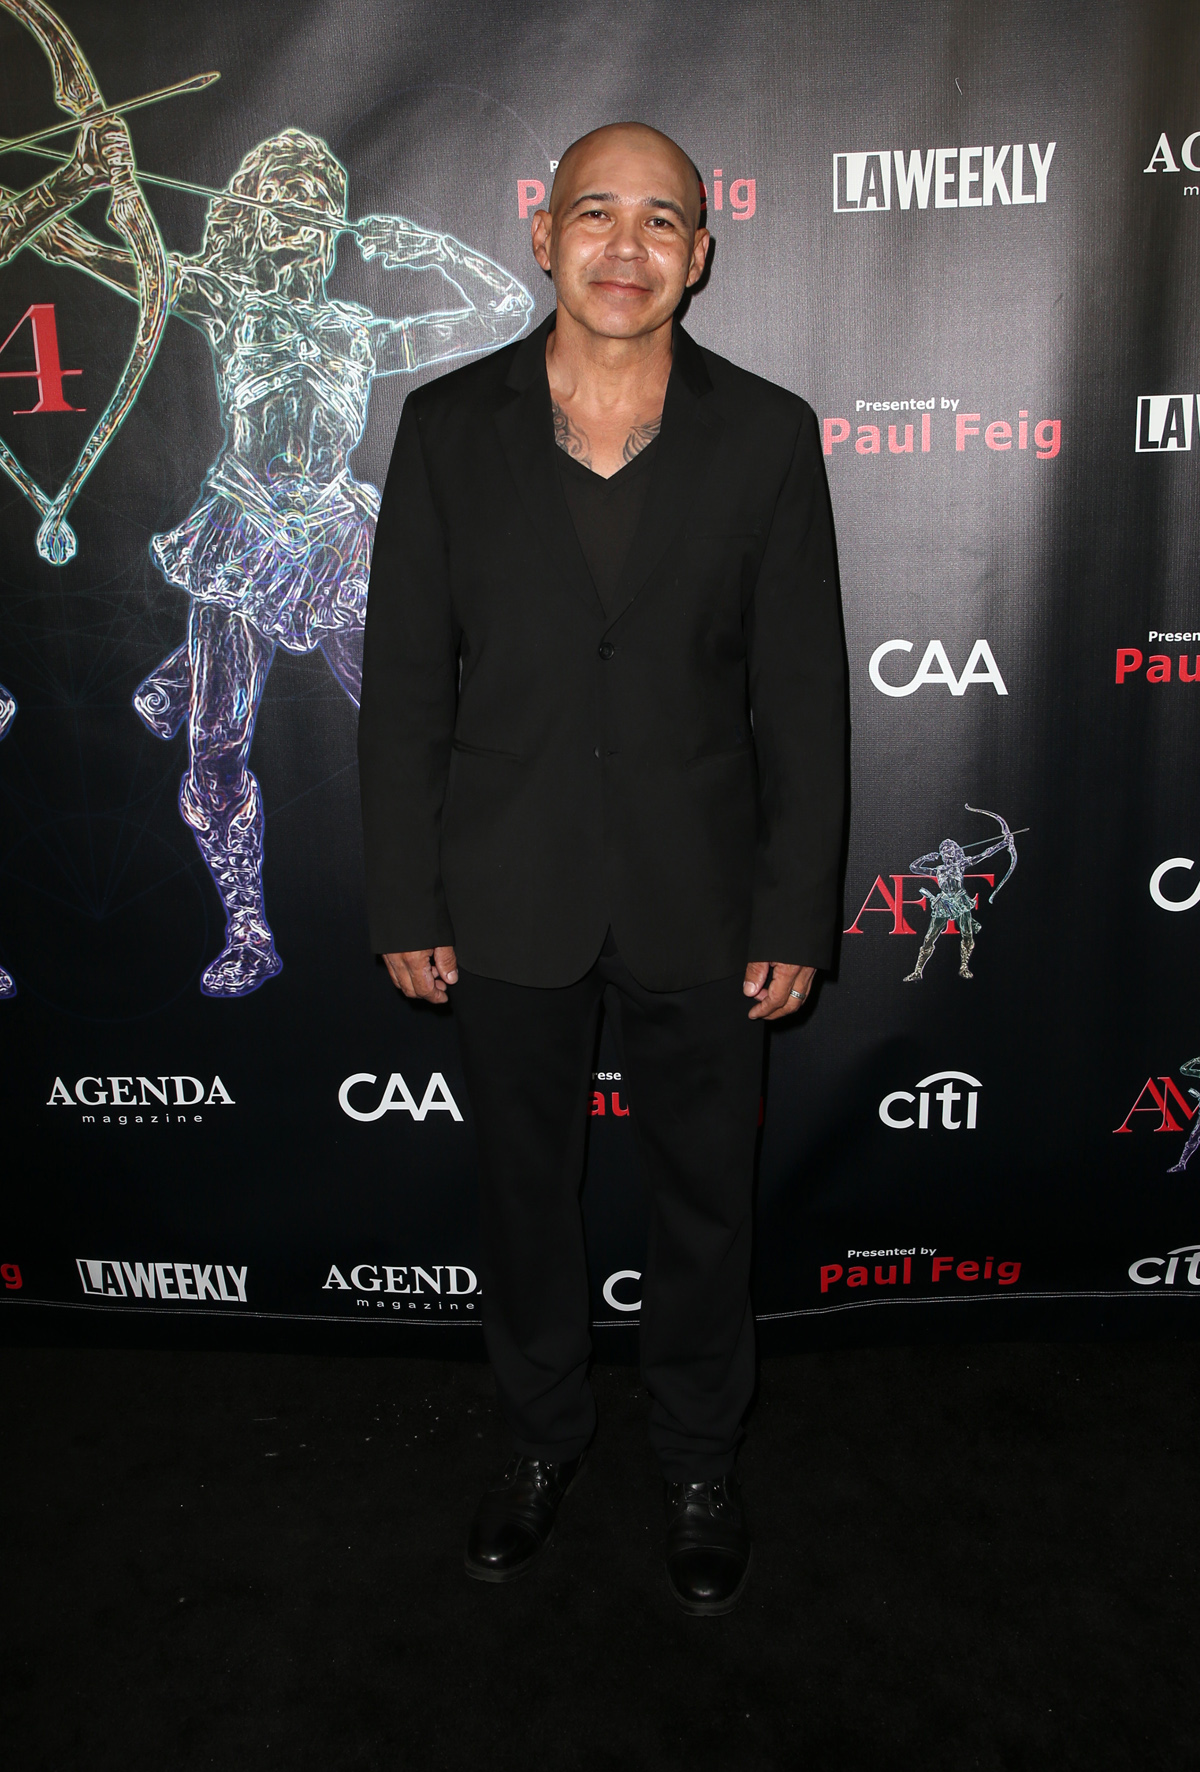 BEVERLY HILLS, CA - APRIL 26: Eddie Perez, at the 2018 Artemis Awards Gala at the Ahrya Fine Arts Theater in Beverly Hills, California on April 26, 2018. Credit: Faye Sadou/MediaPunch